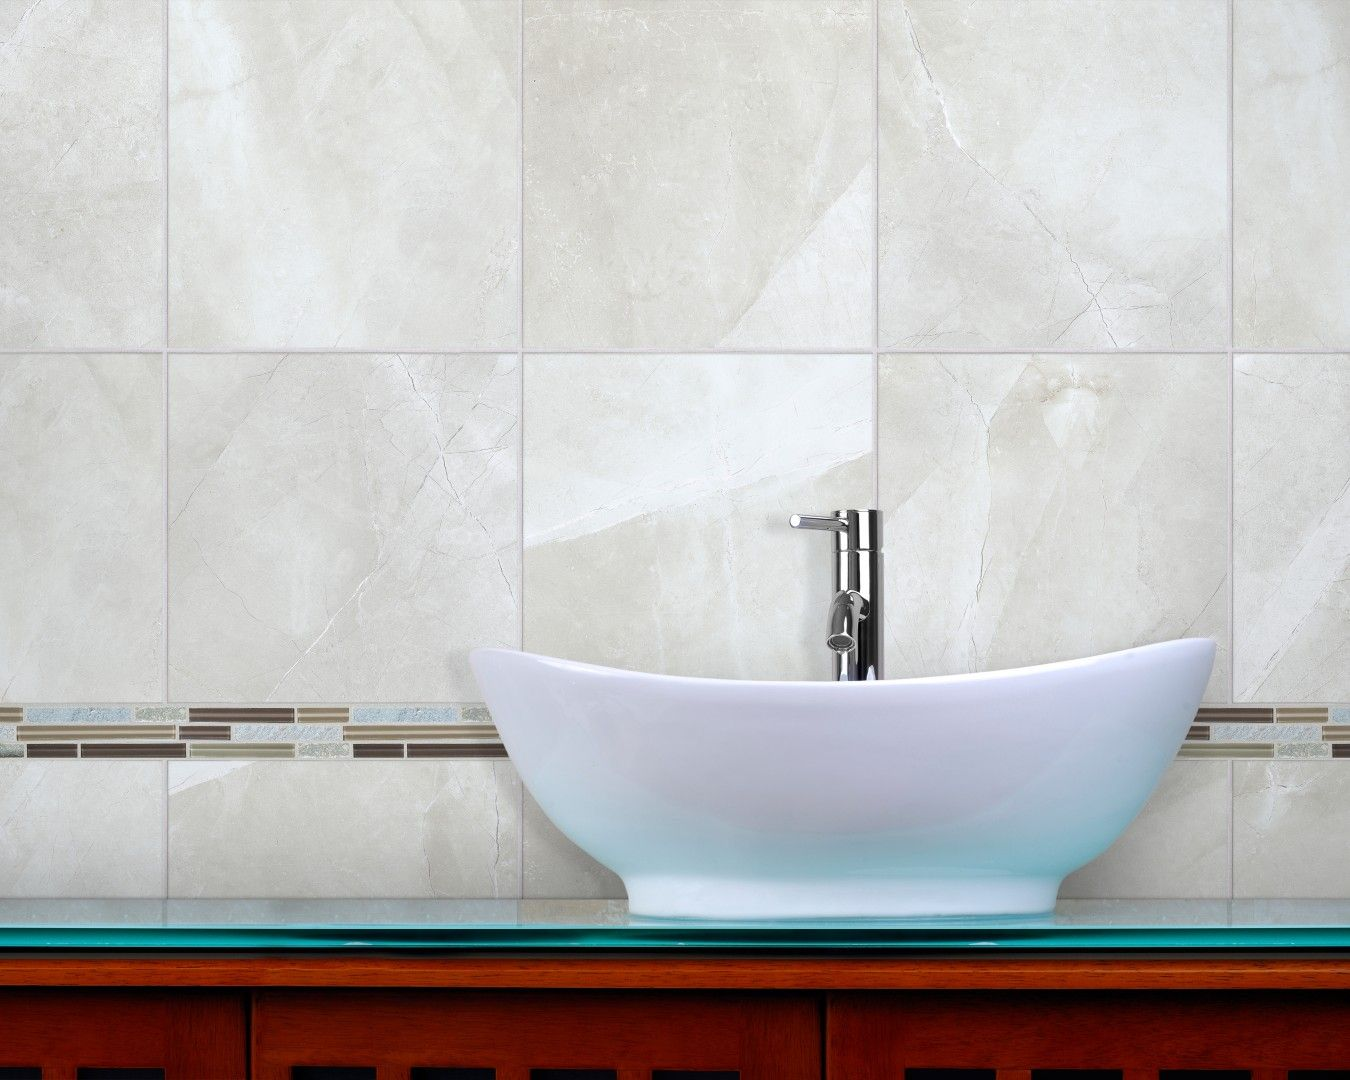 Pulpis ivory high definition porcelain wall tile anatolia tile ceramic tileworks is your resource for porcelain tile in minnesota we also offer natural stone tile ceramic tile glass mosaic tile and natural stone dailygadgetfo Image collections